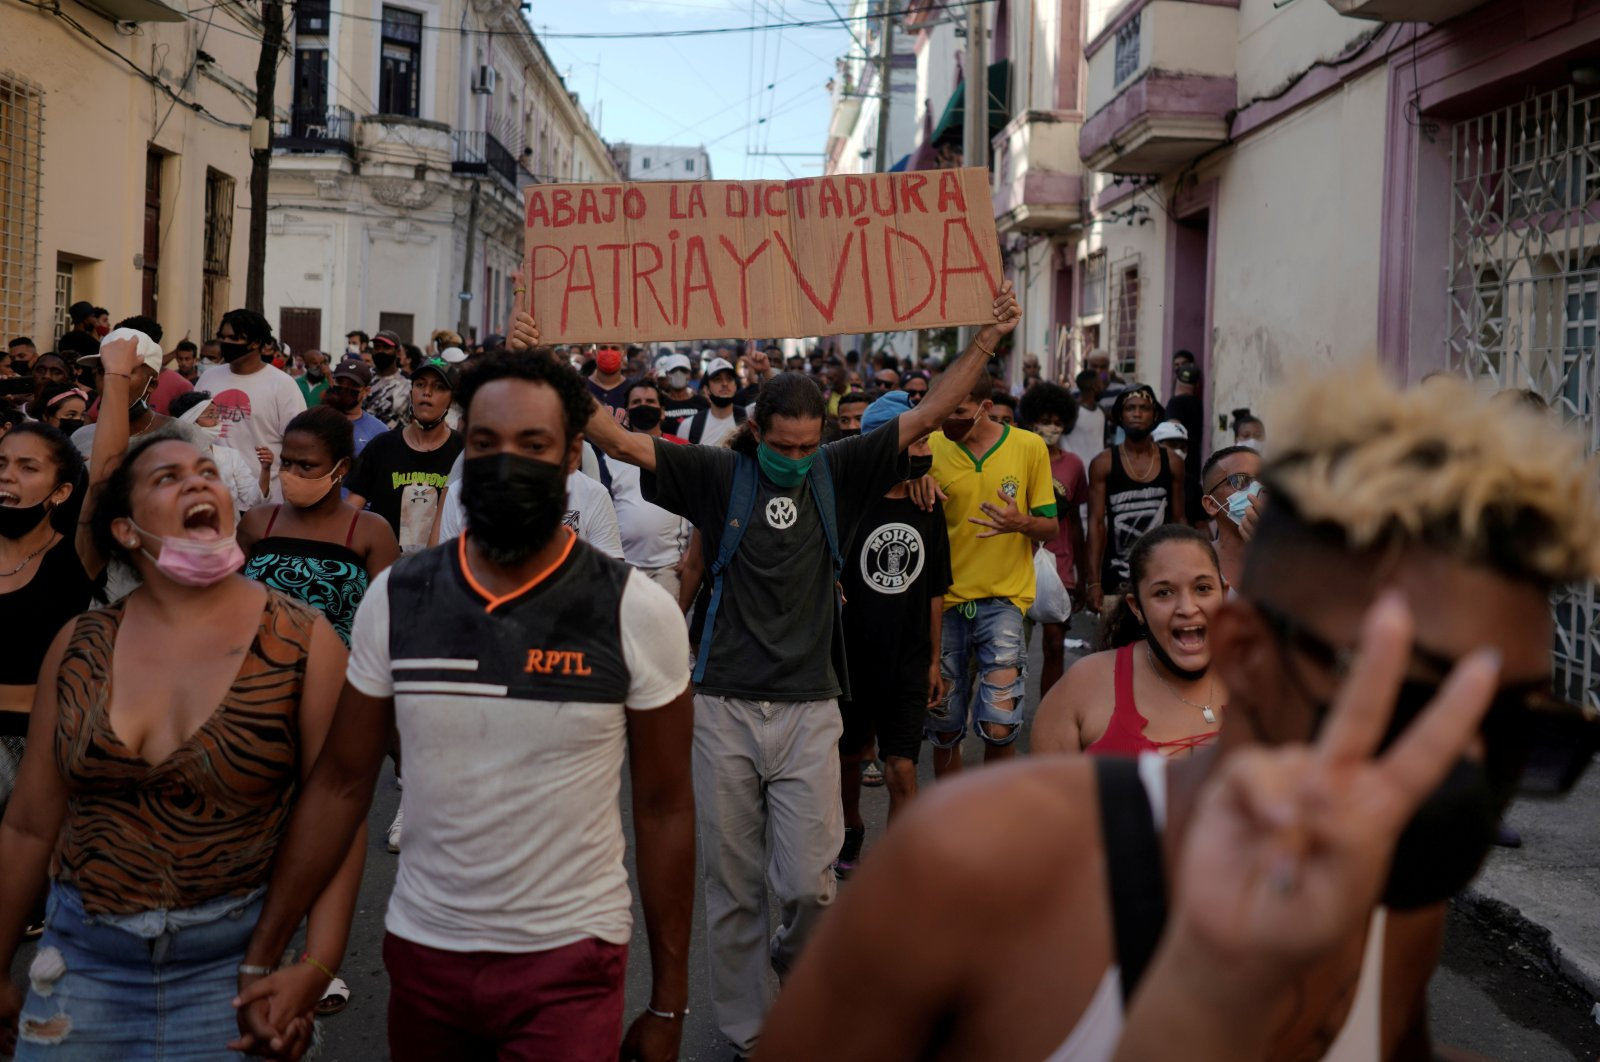 People shout slogans against the government during a protest, in Havana, Cuba, July 11, 2021. (Reuters Photo)